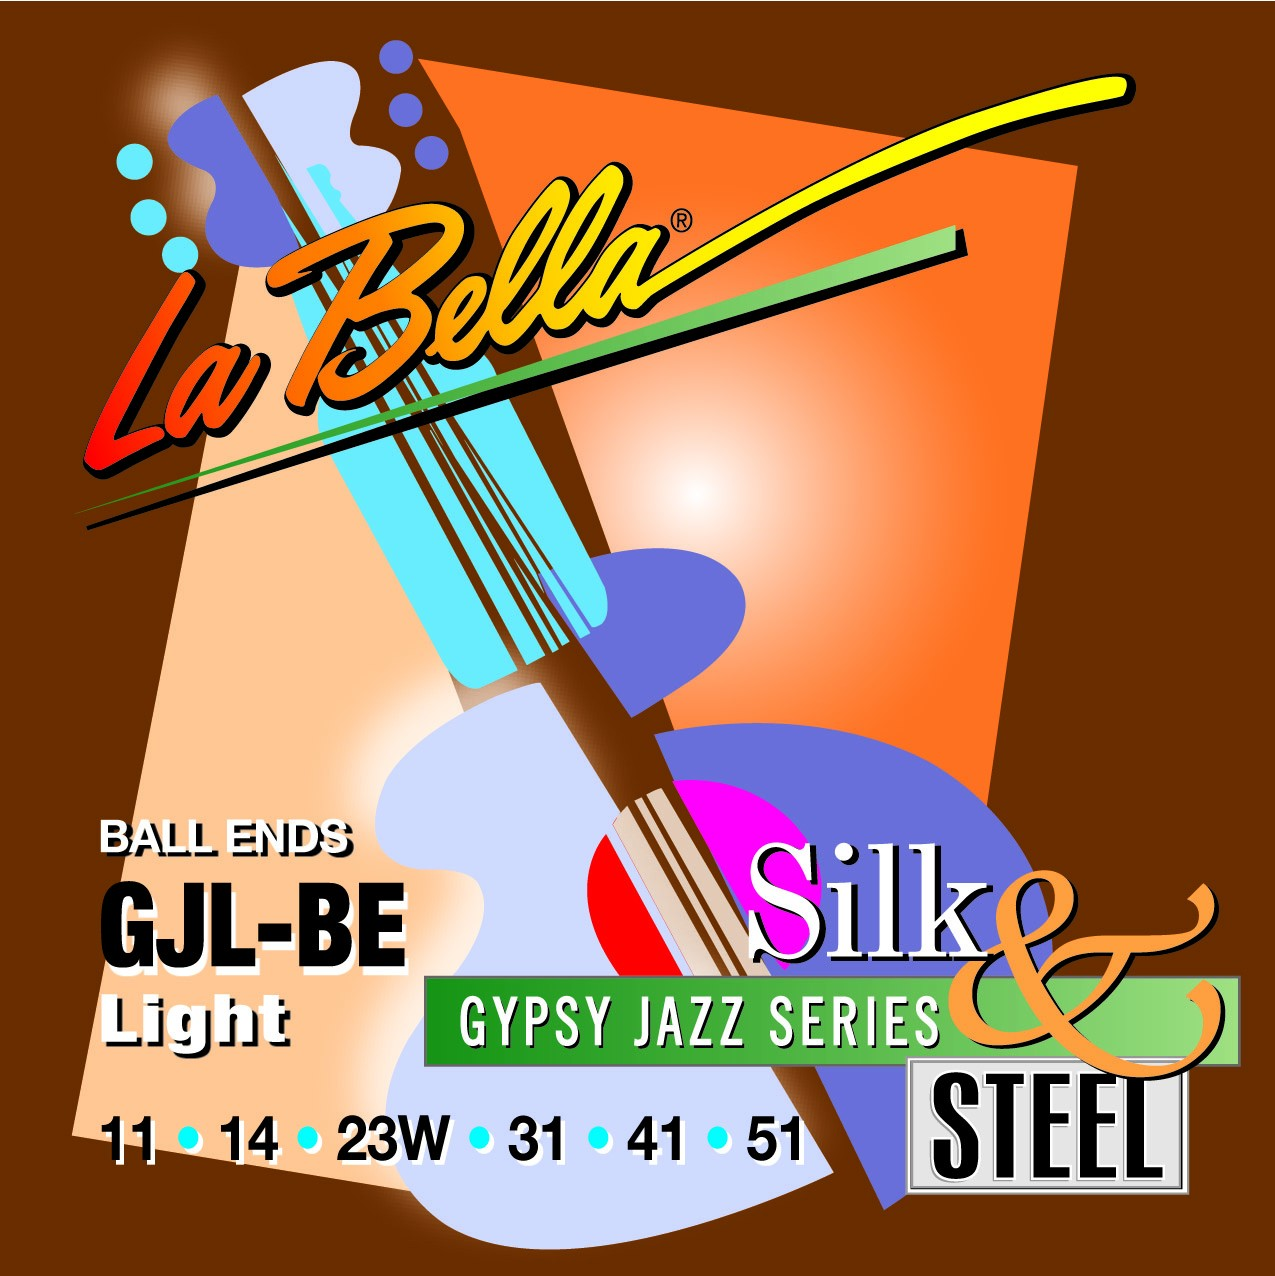 La Bella Jazz Guitar Strings - Gypsy Jazz Silk & Steel Series